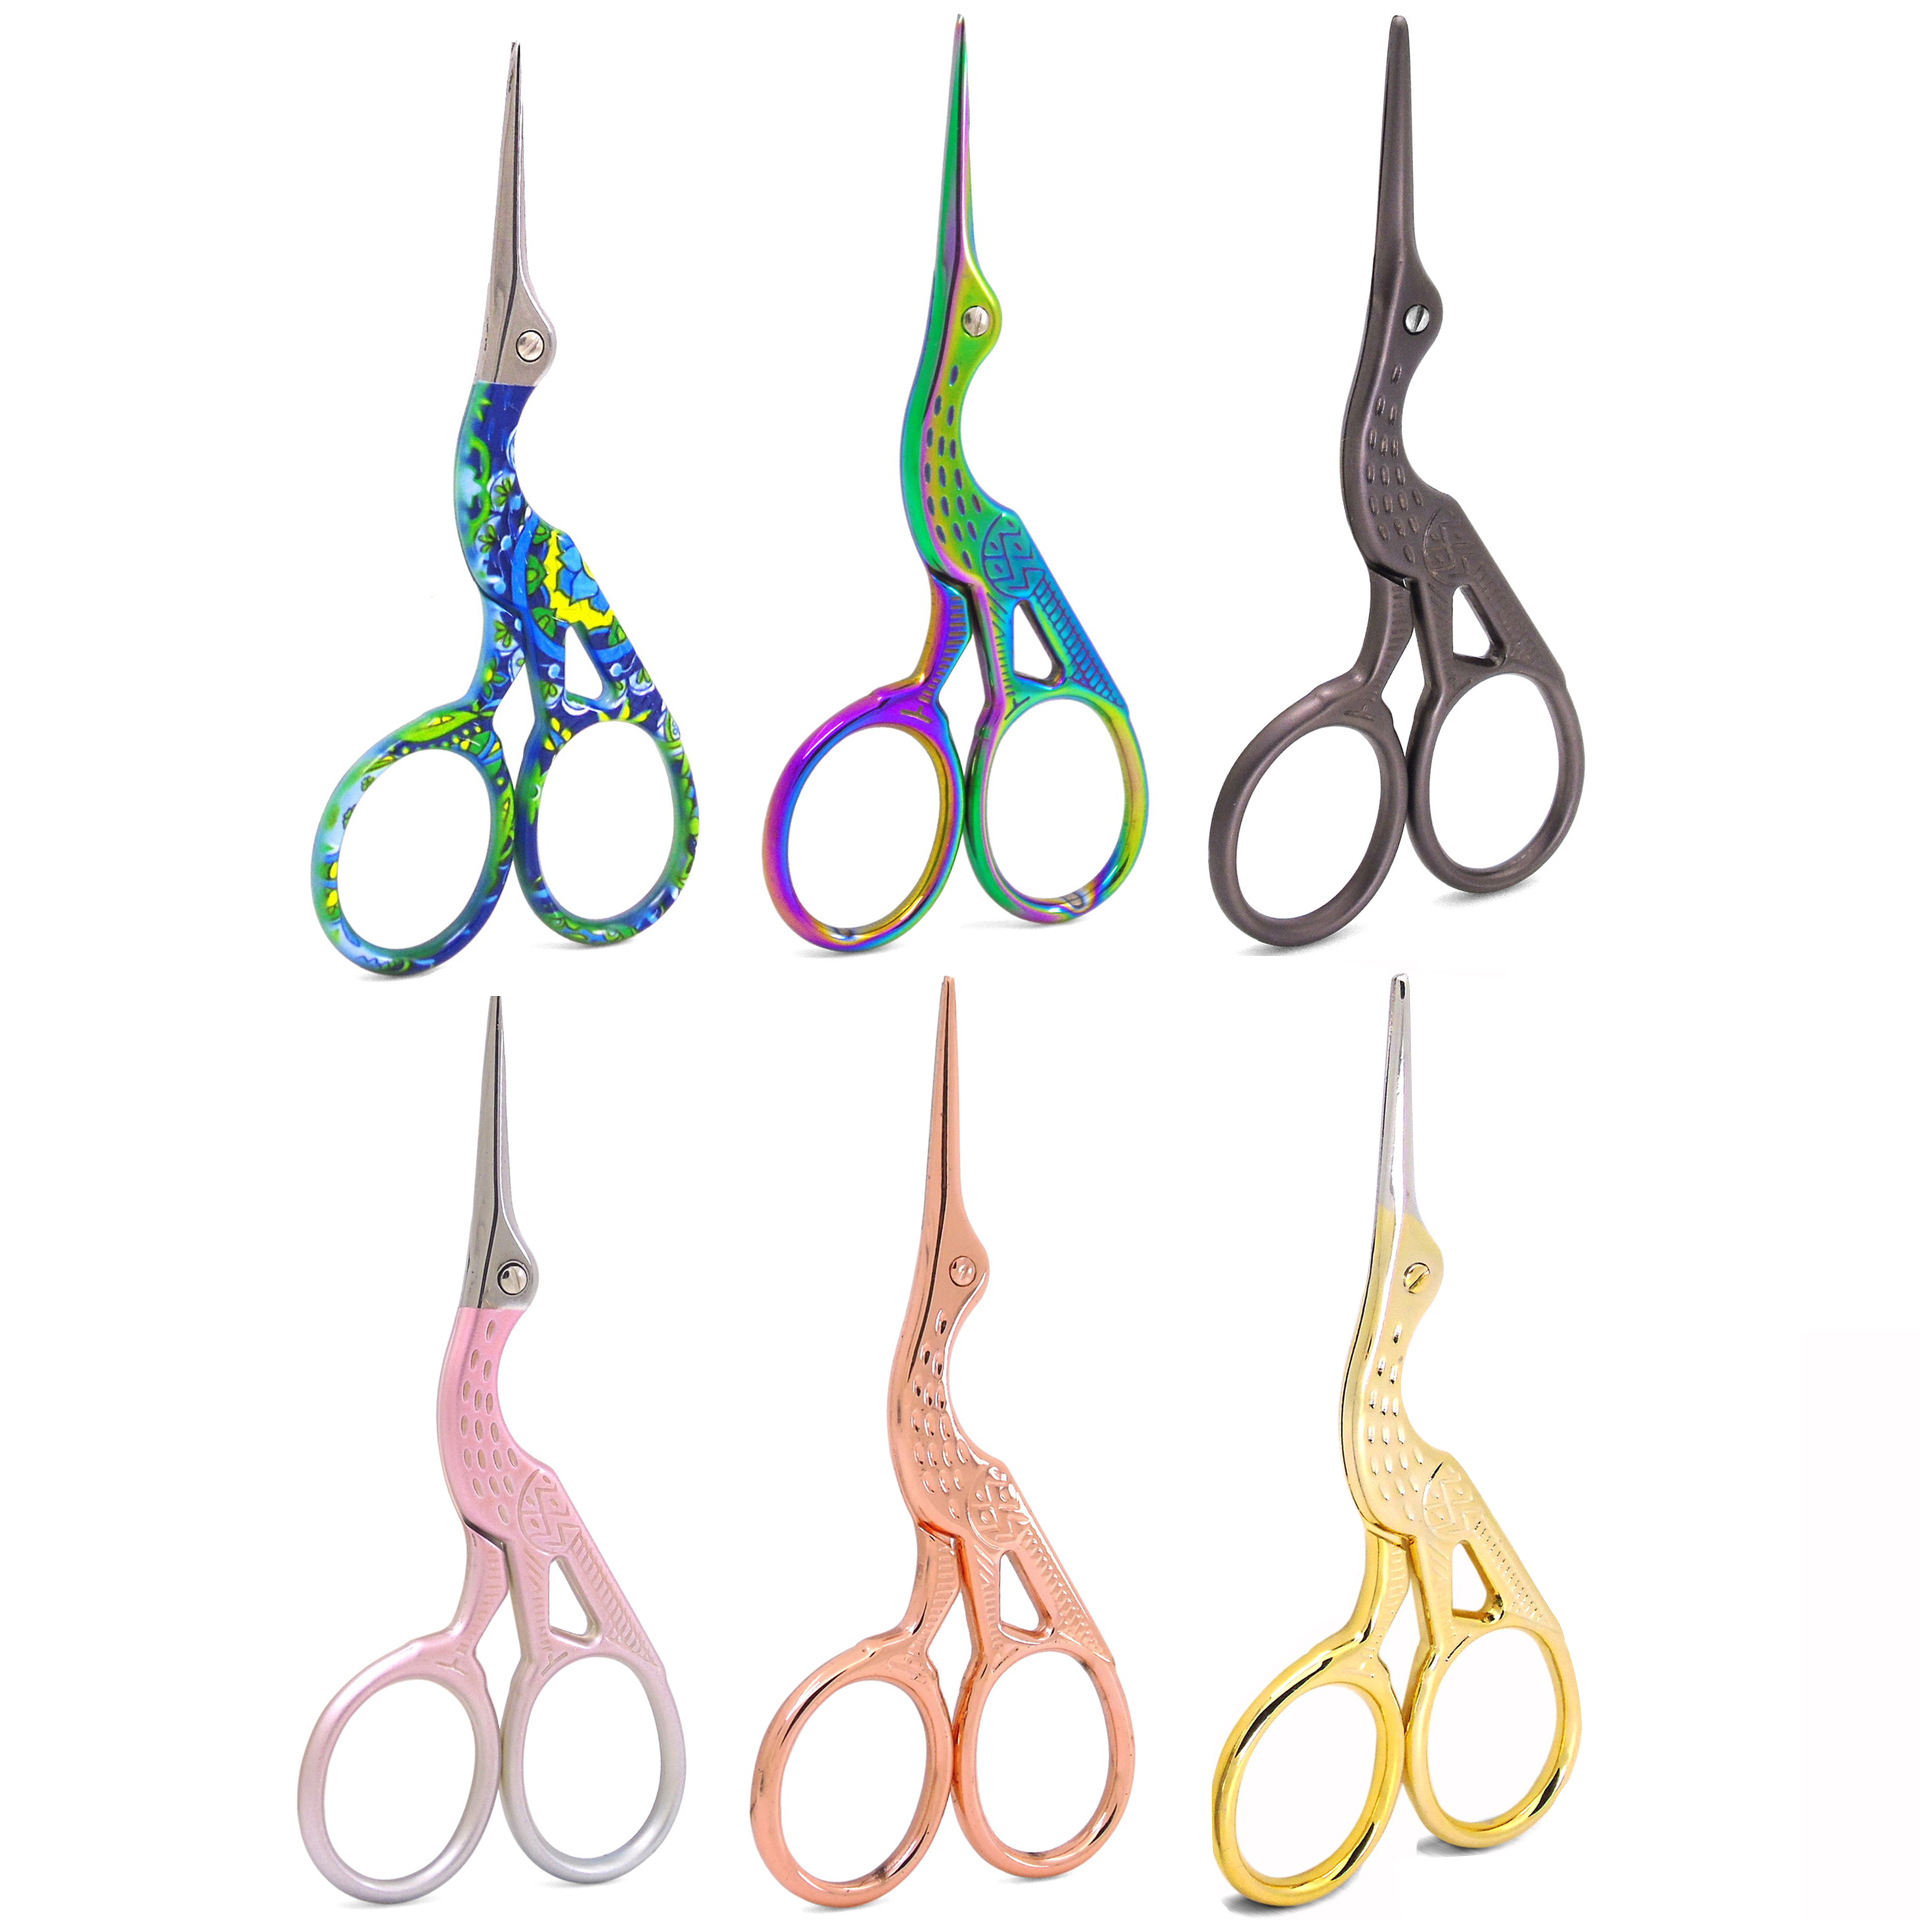 Wholesale Rose Gold/Rainbow Stainless Steel Beauty Trimming Curved Eyebrow Scissors